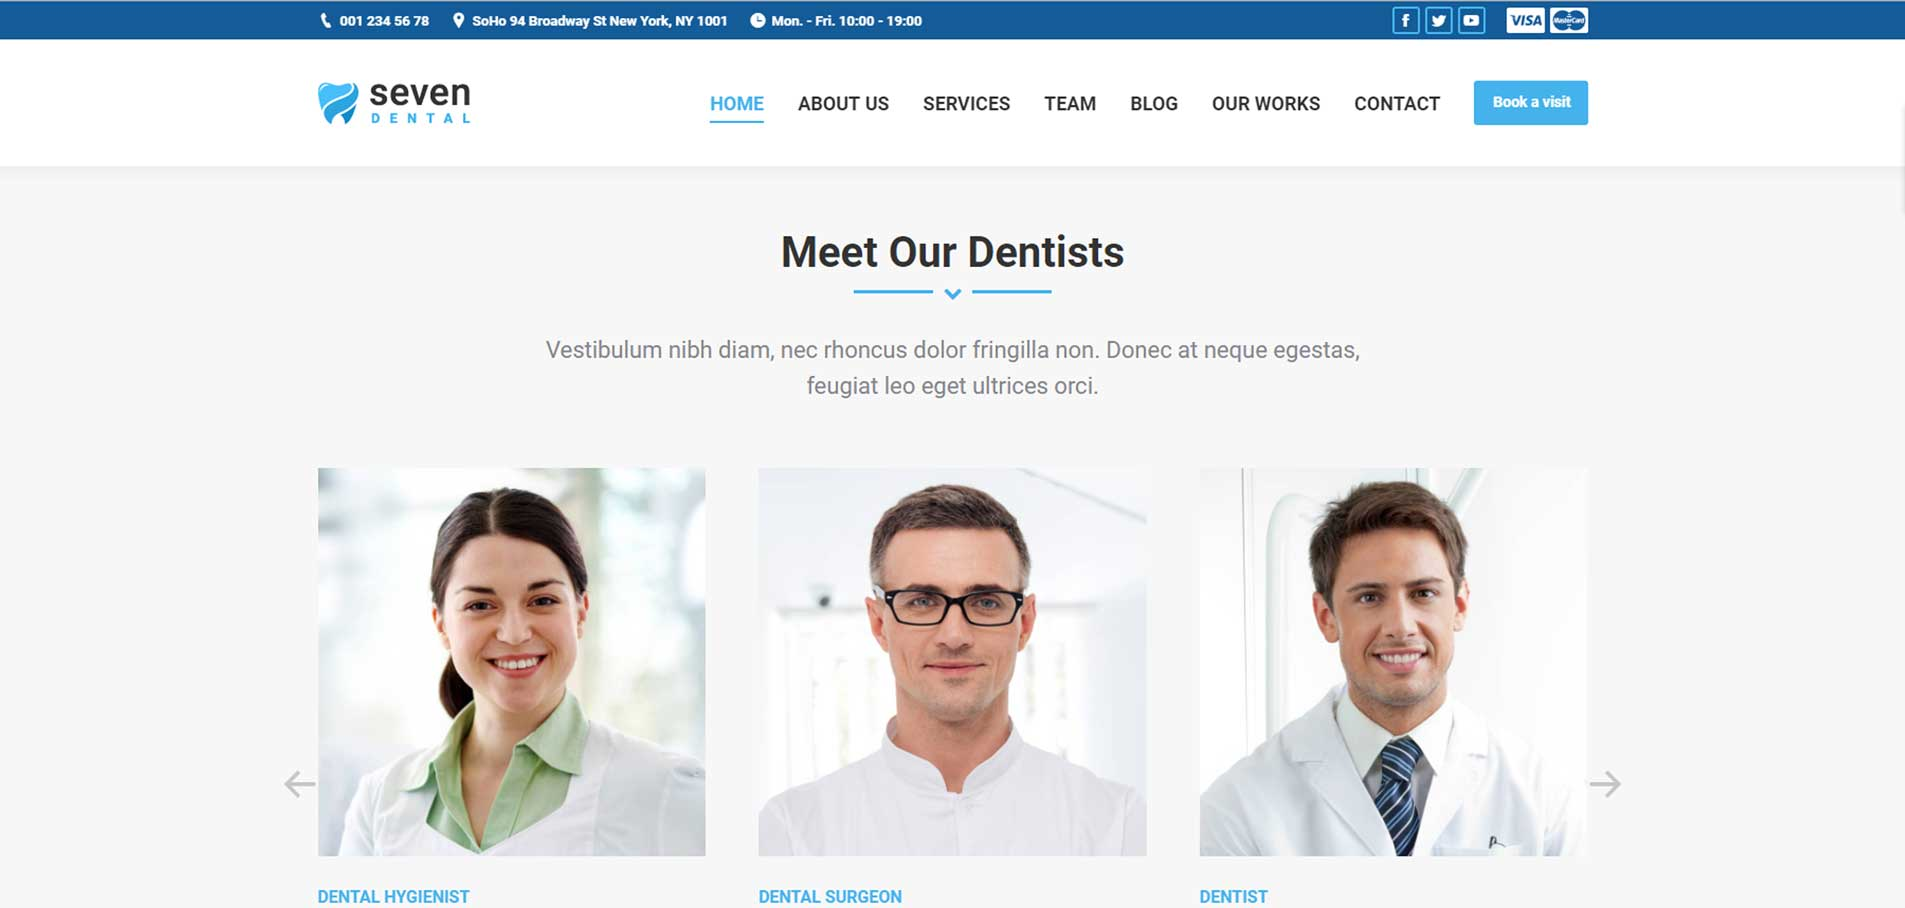 Customized dental website - team page